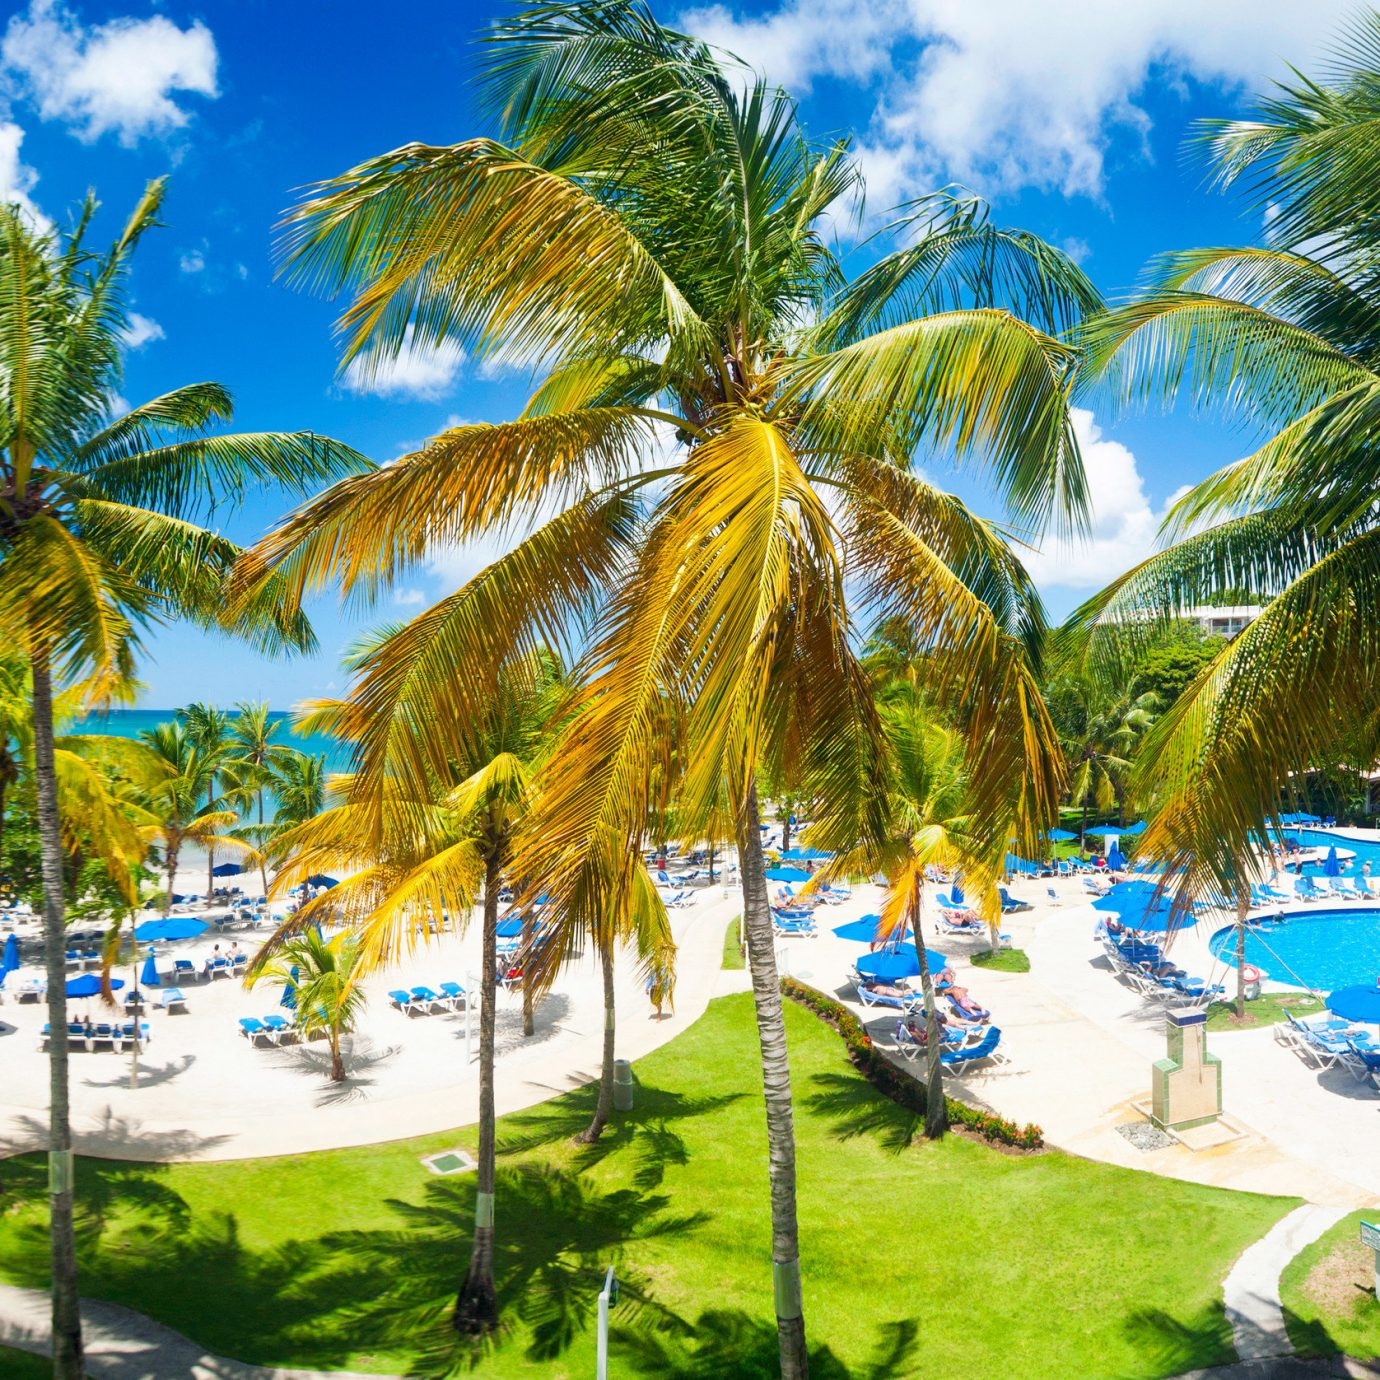 tree sky grass palm caribbean plant Beach Resort palm family arecales tropics Pool